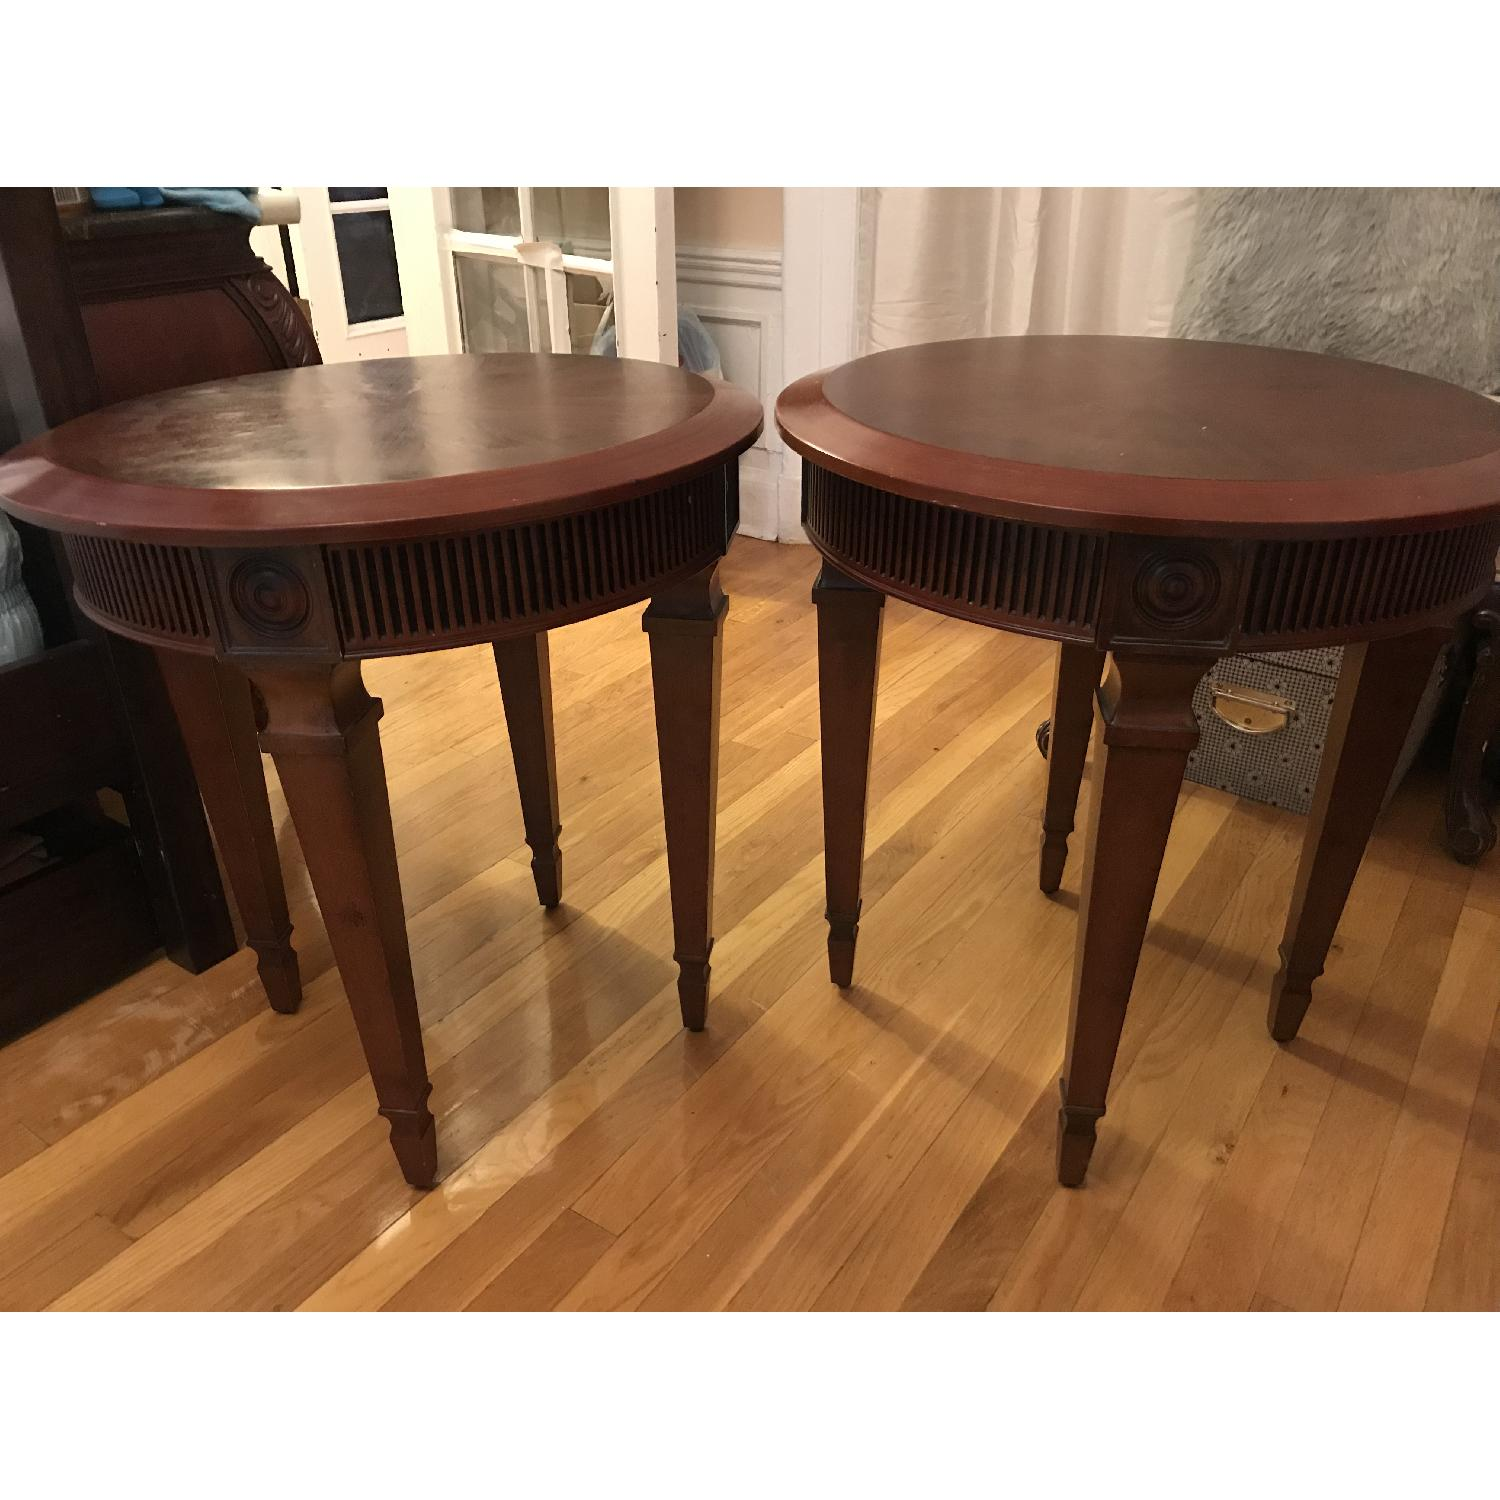 Bombay Company Antique-Style Side Tables - image-9